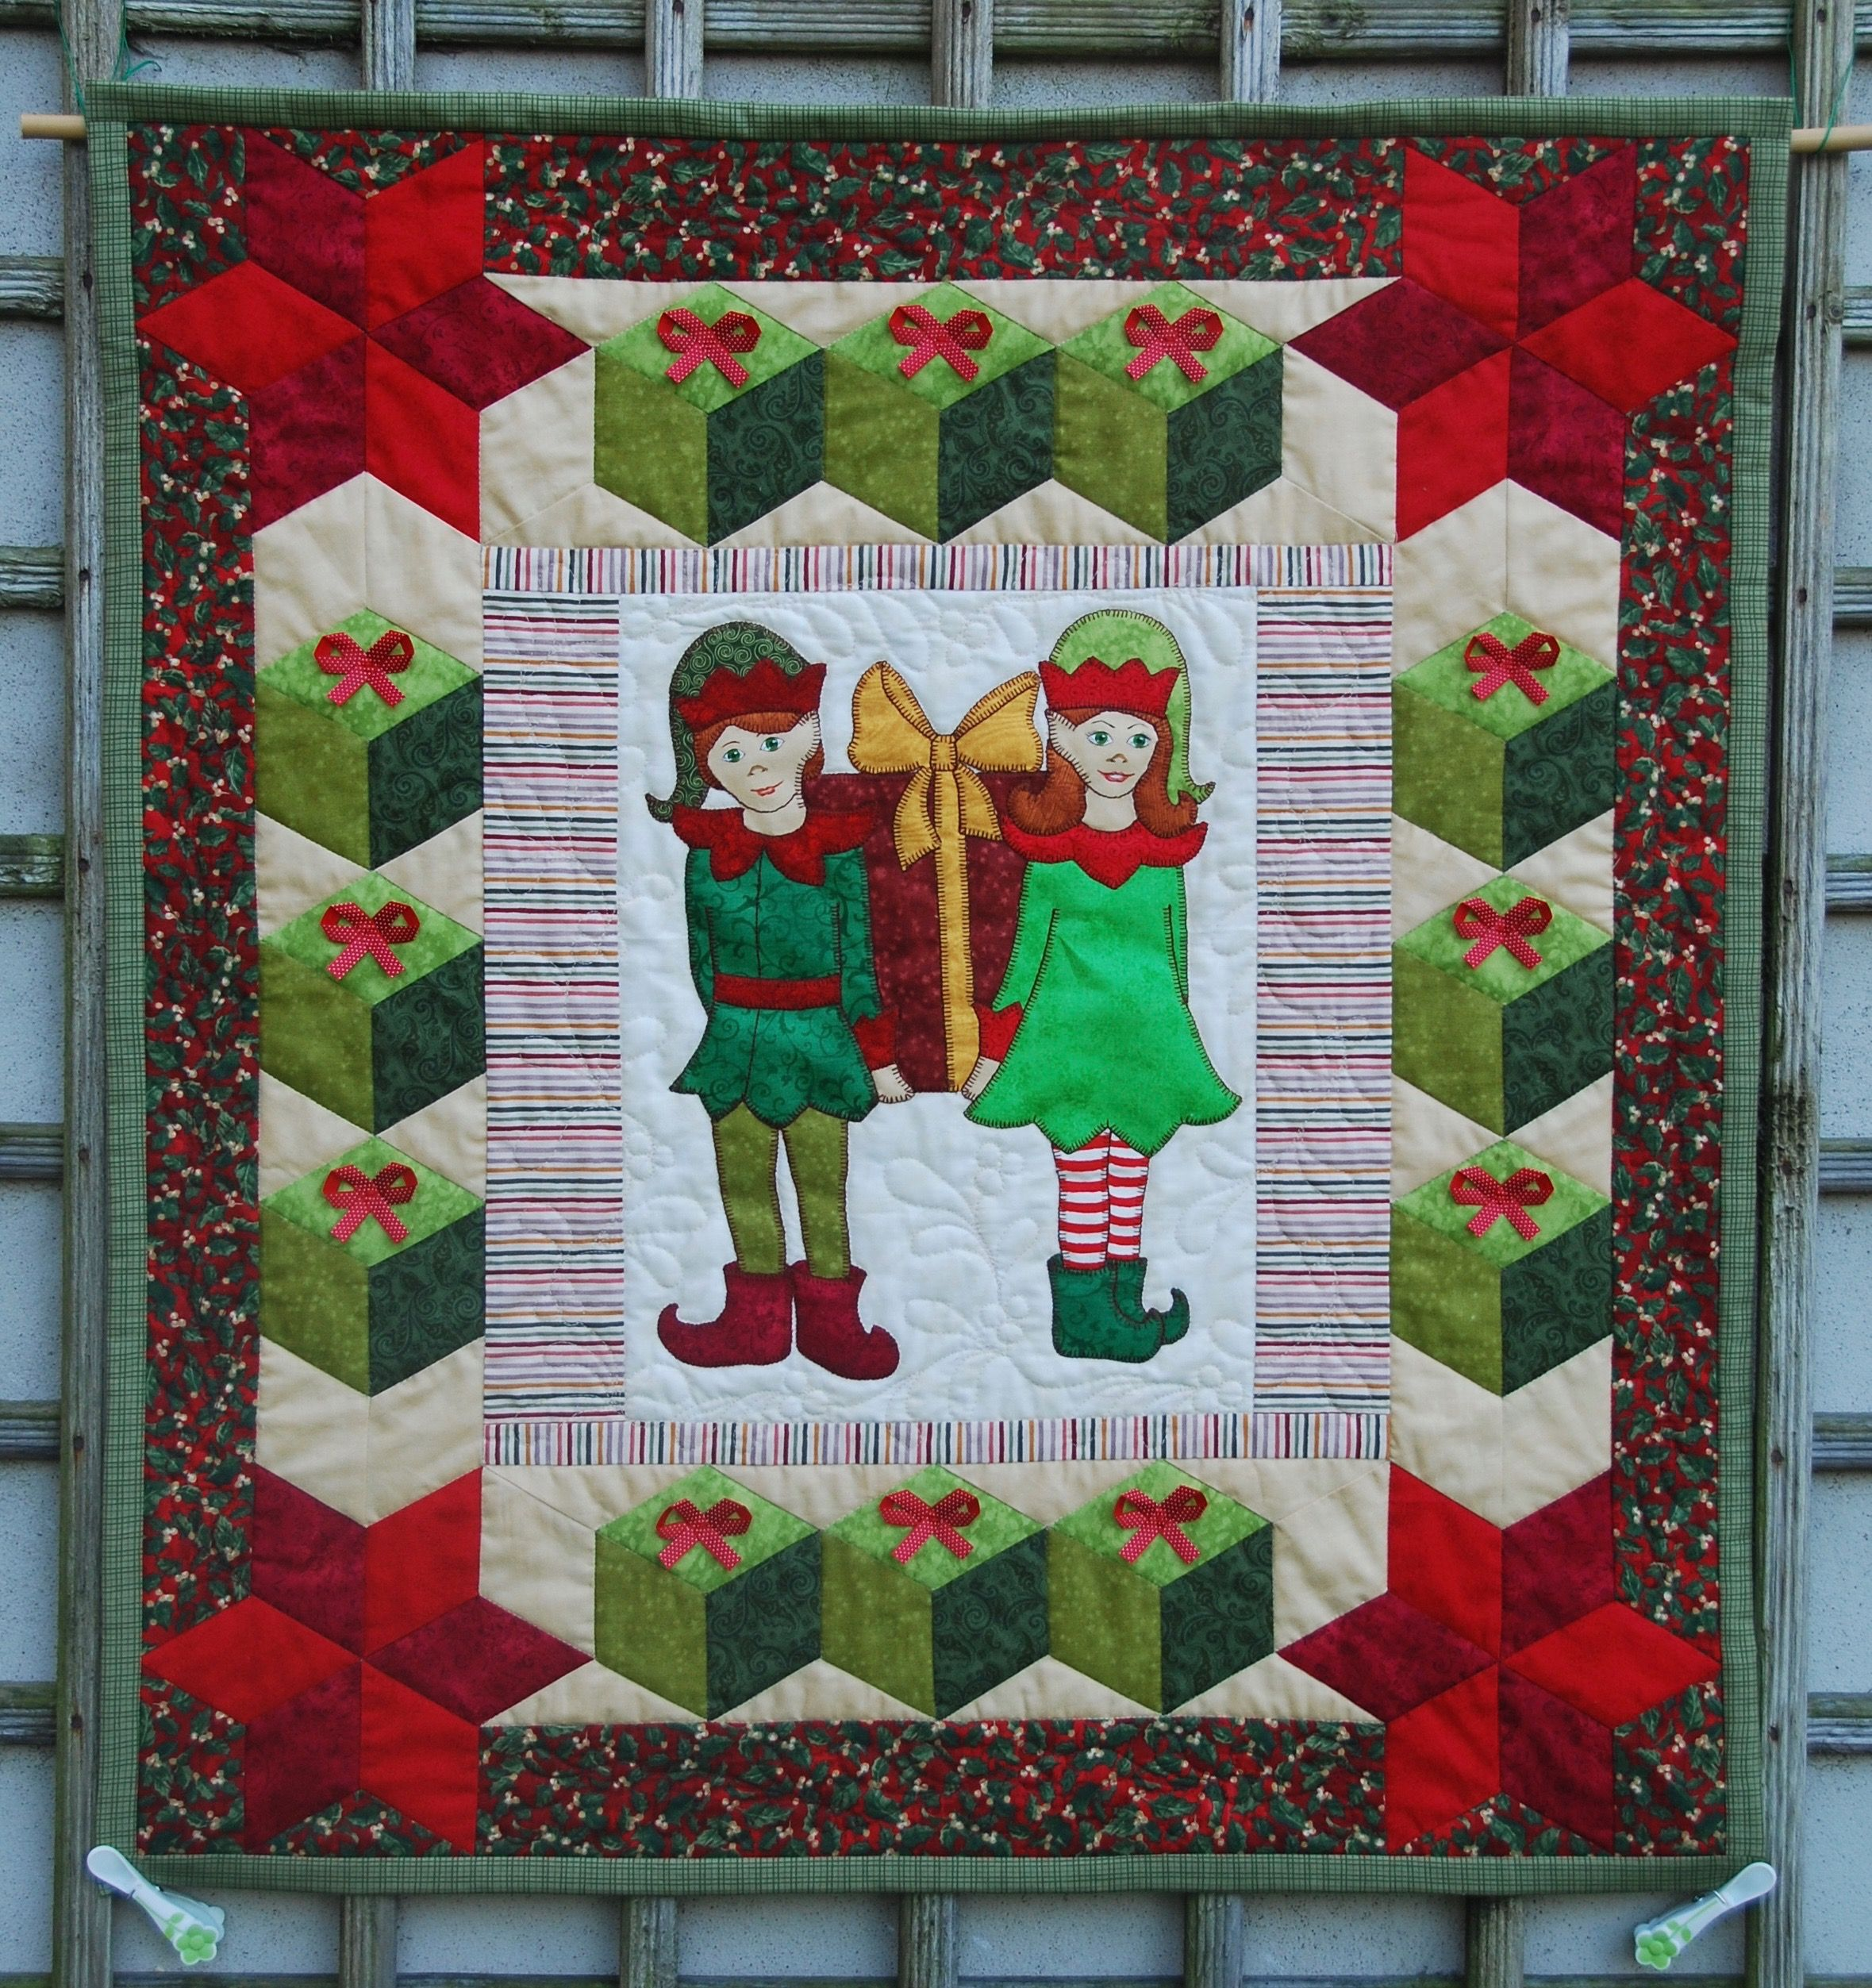 Pinterest Christmas Quilted Wall Hangings Pin By Quilt Inspiration On Christmas Quilts Christmas Elf